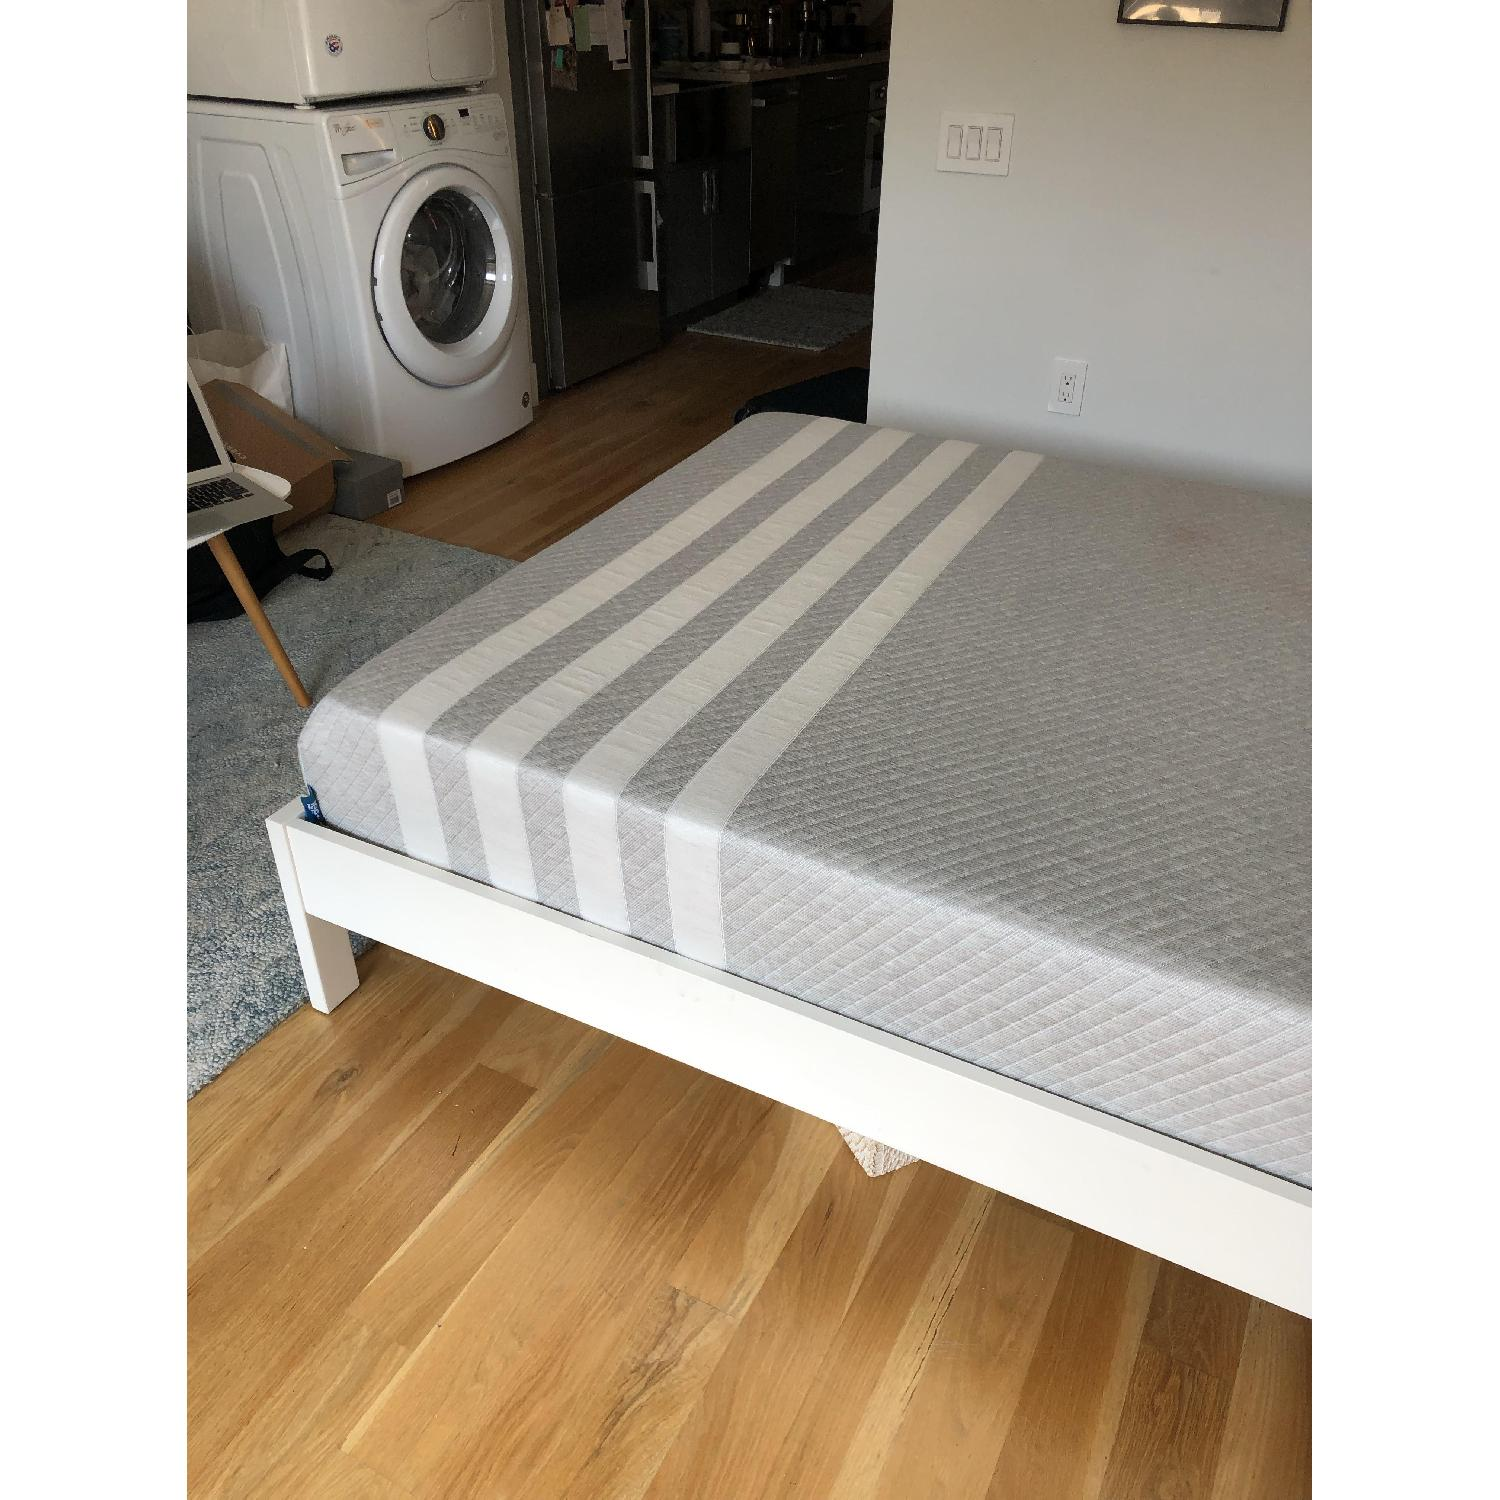 West Elm Simple Full Bed Frame in White Lacquer w/ Headboard - image-4